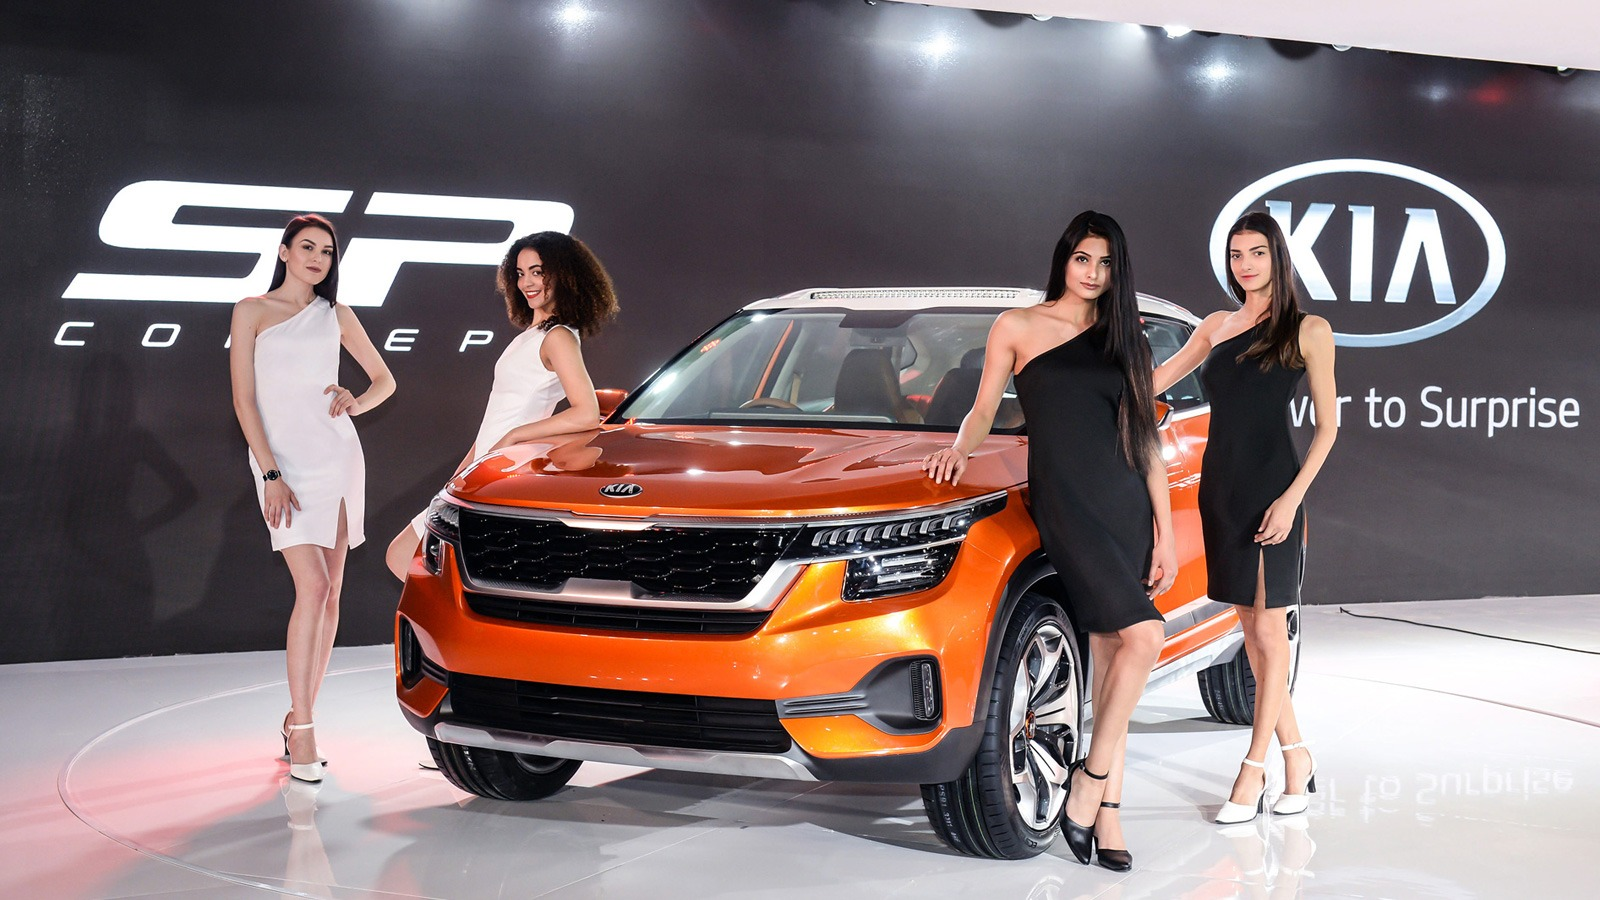 Kia to Begin Operations in India with SP-Concept Based SUV 1